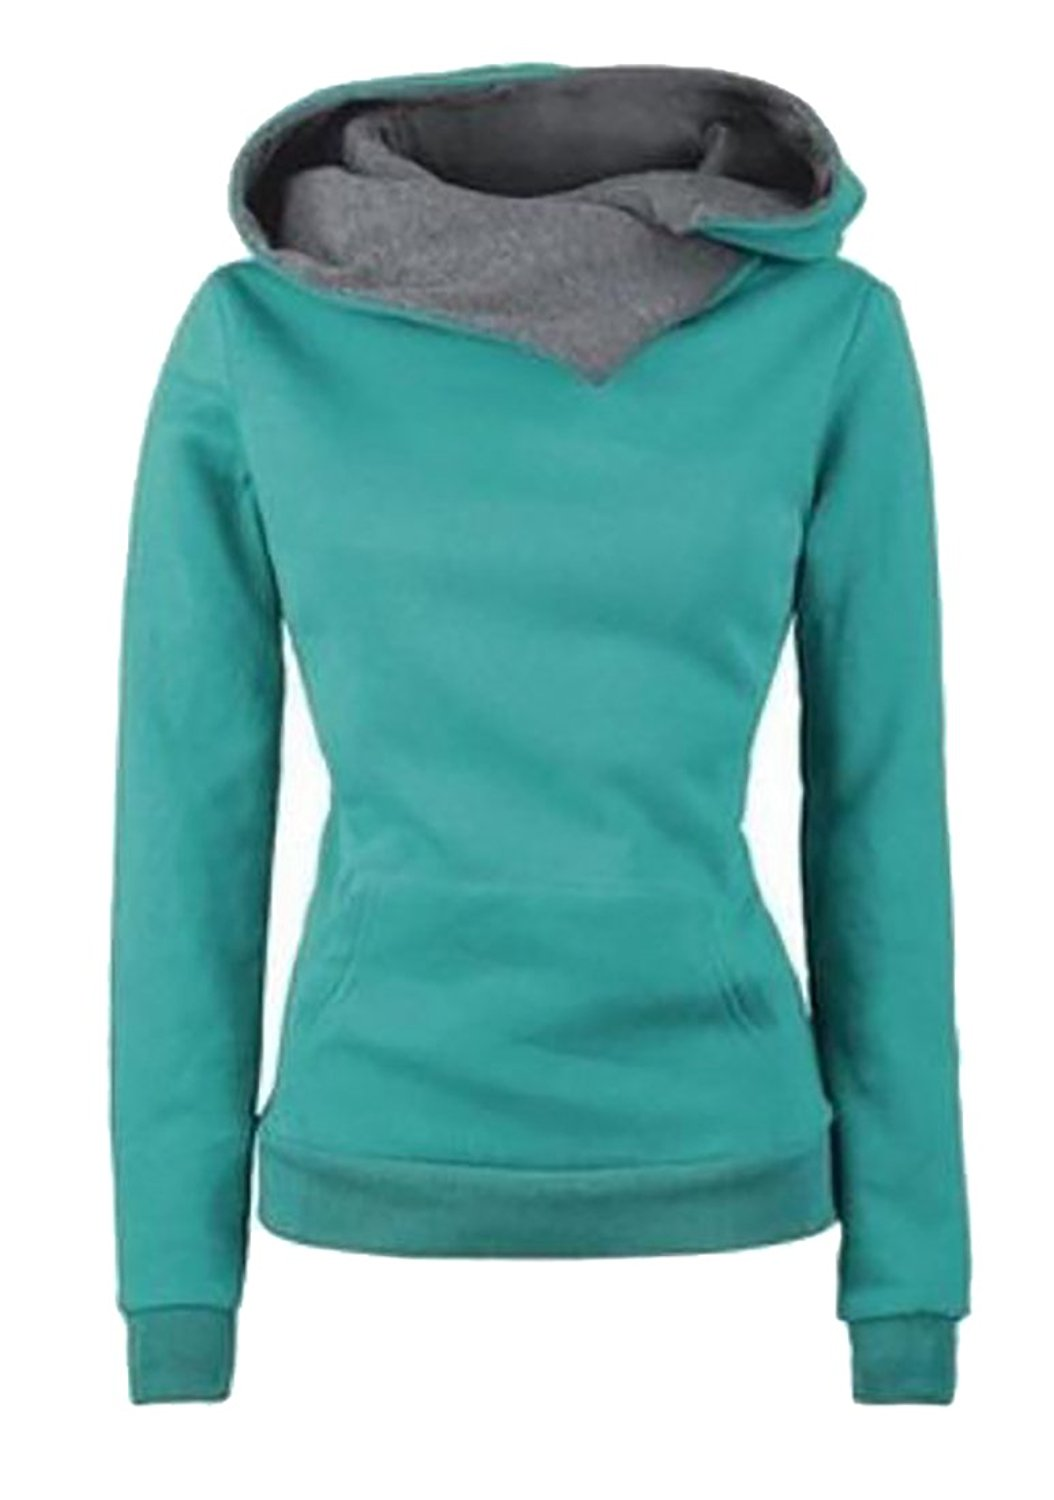 ONTBYB Women's Solid Funnel Neck Hoodies Solid Color Pullover Hooded Sweatshirt